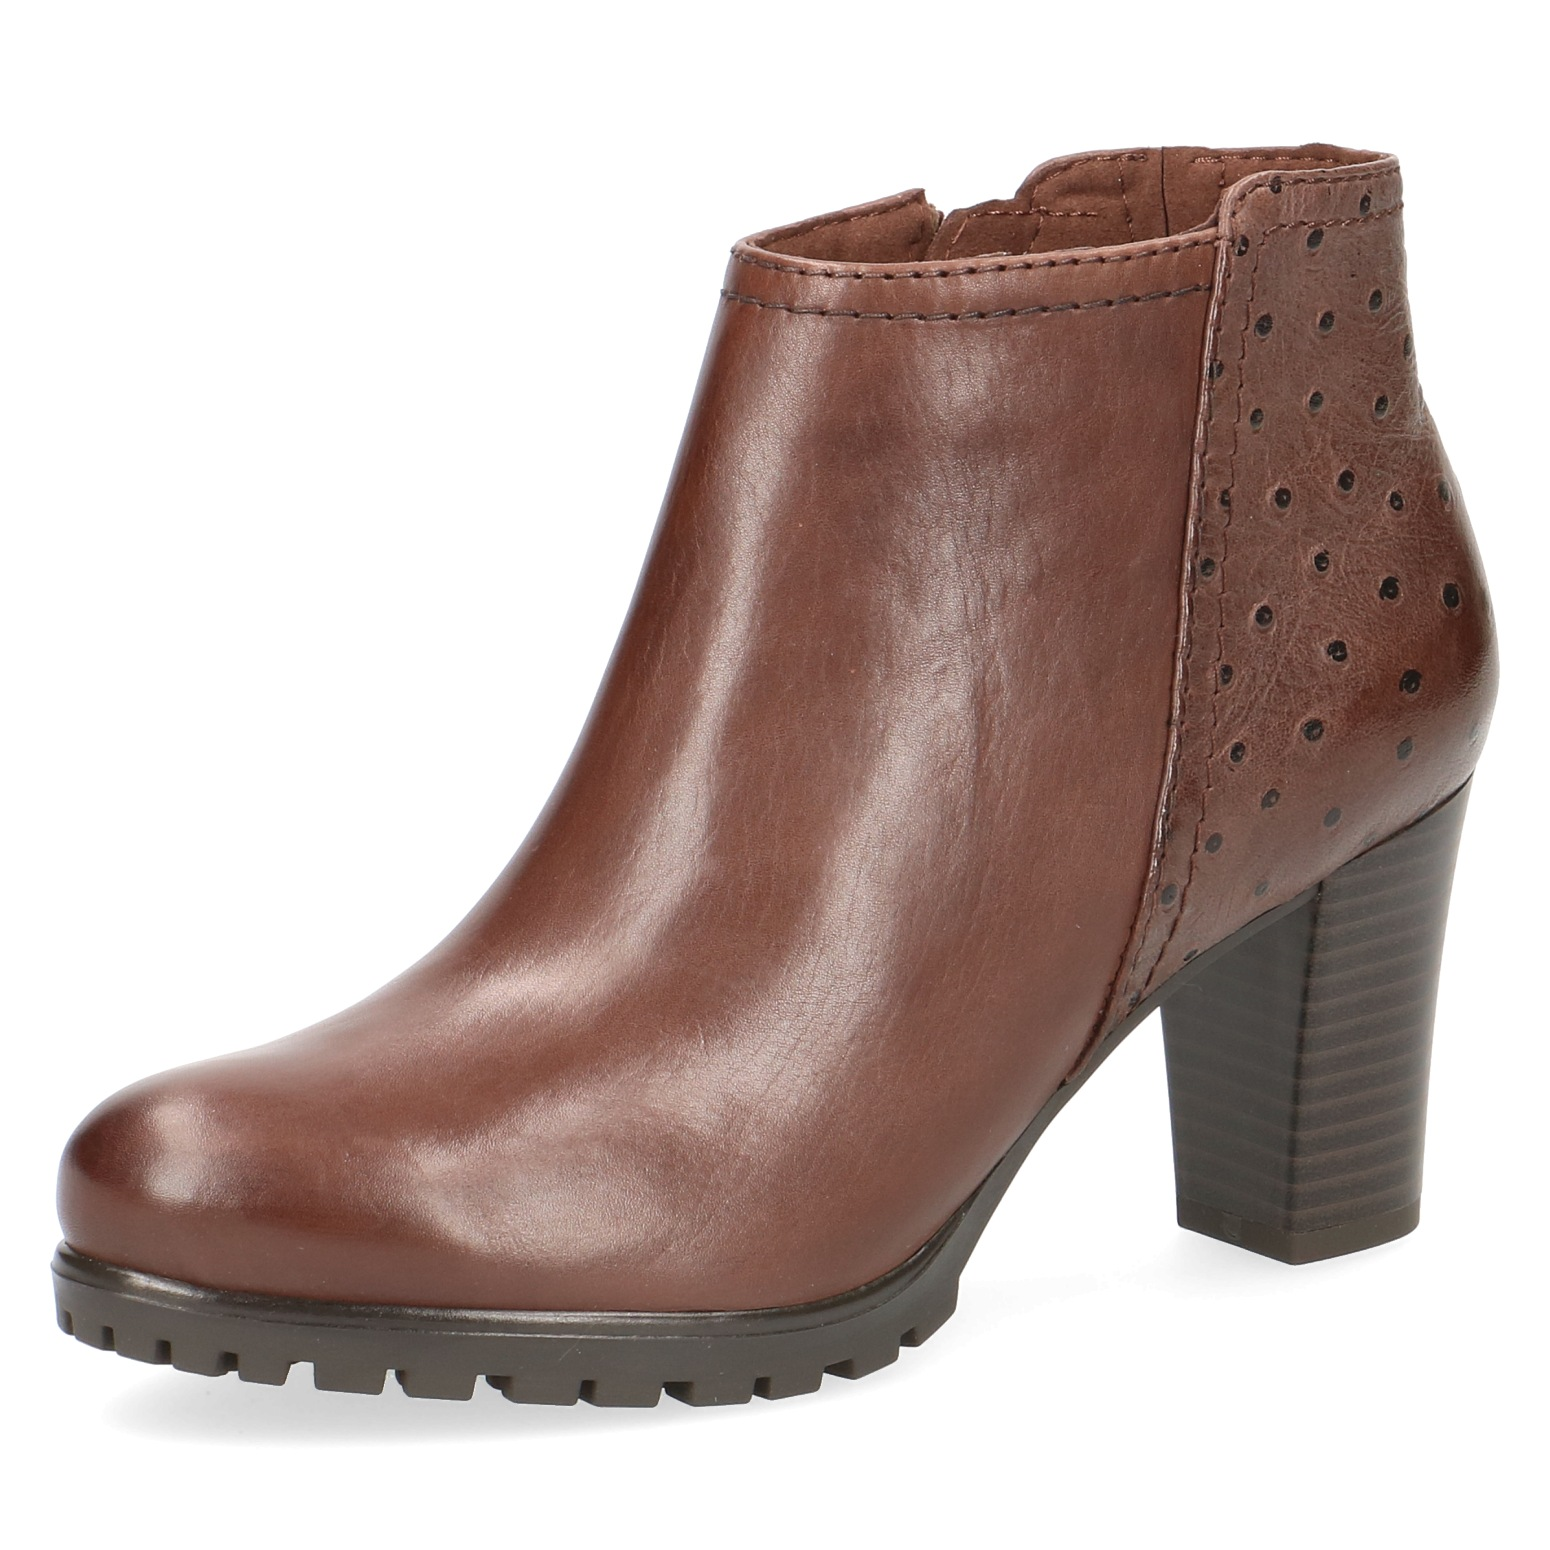 Caprice Brown Leather Ankle Boot